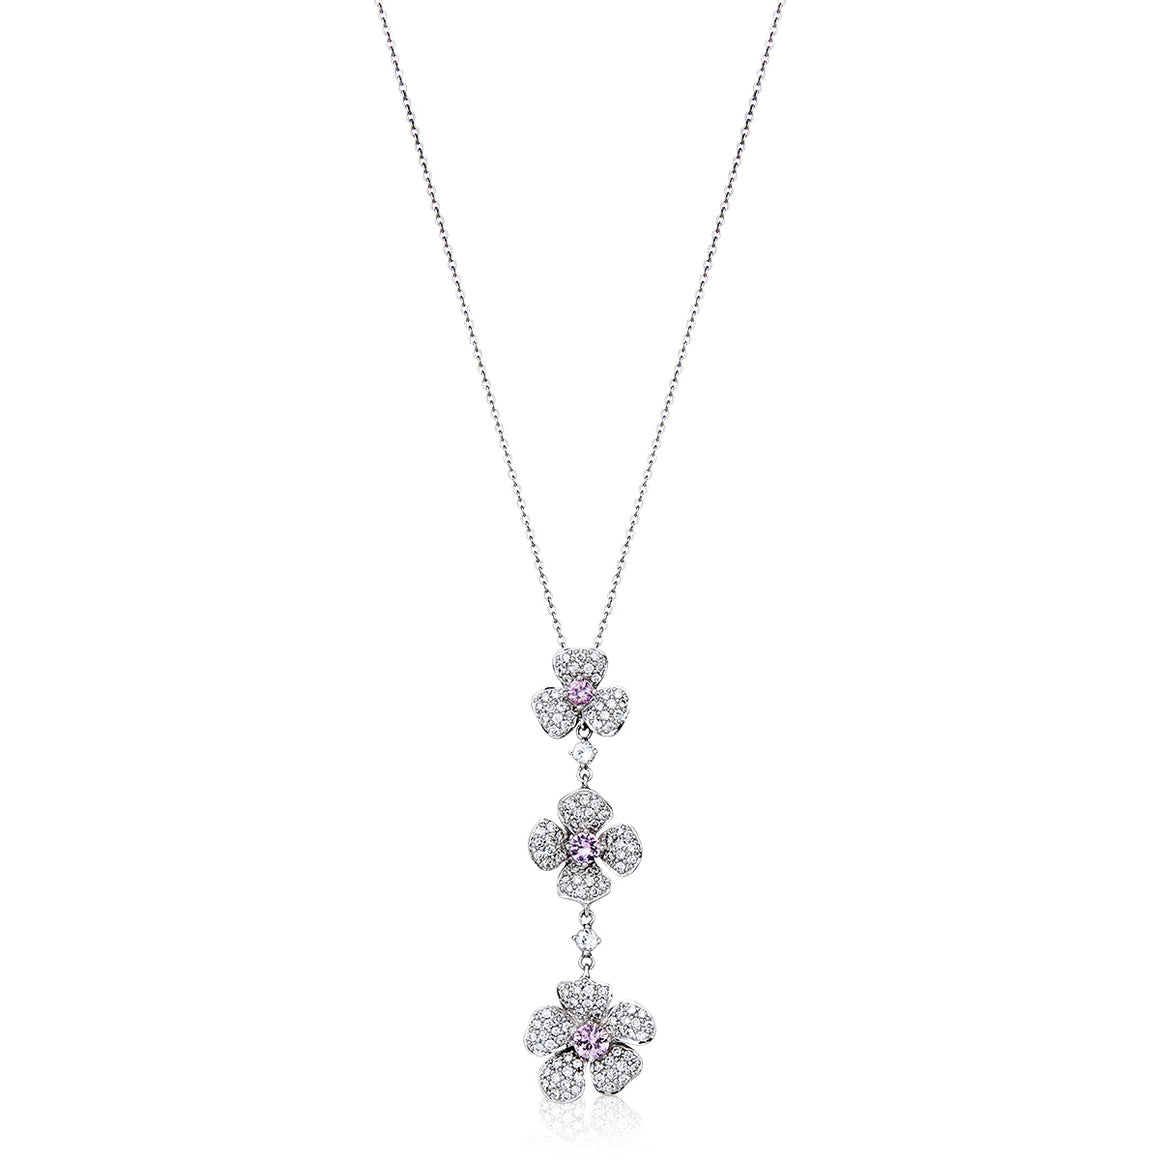 Spring Flower Sapphire and Diamond Necklace - Gemma Stone  ABN:51 621 127 866